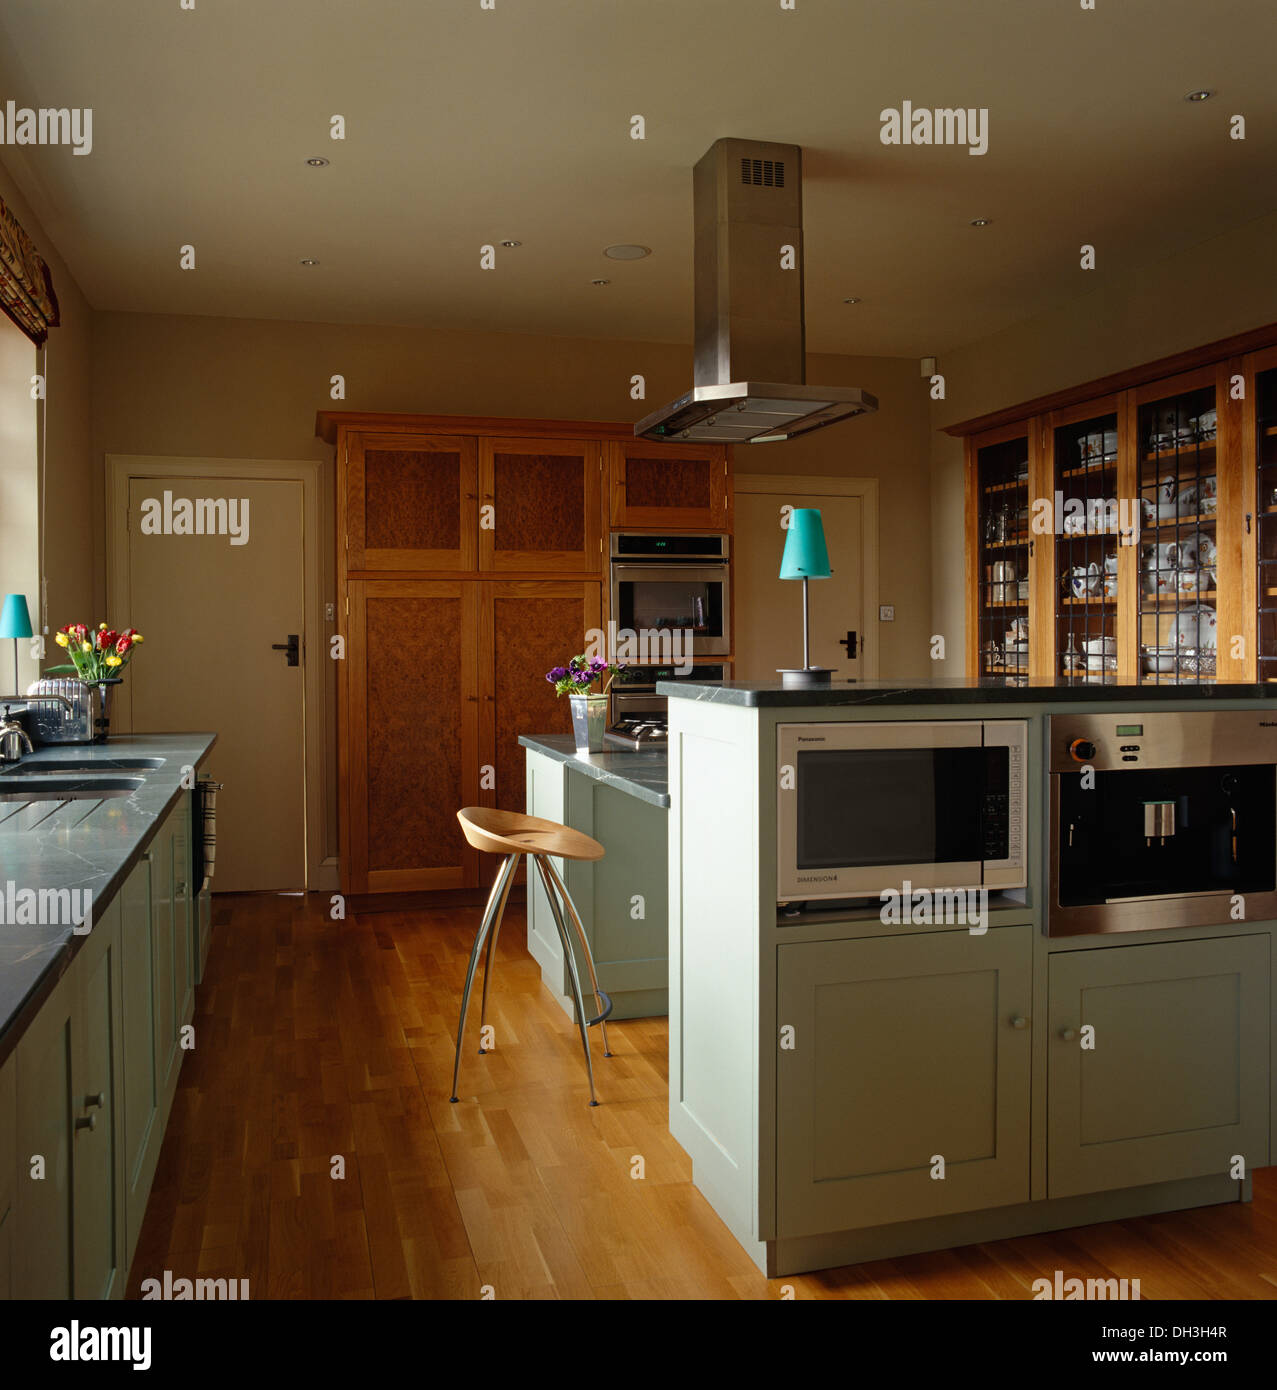 Oven In Island Unit Microwave And Oven In Island Unit In Modern Kitchen With